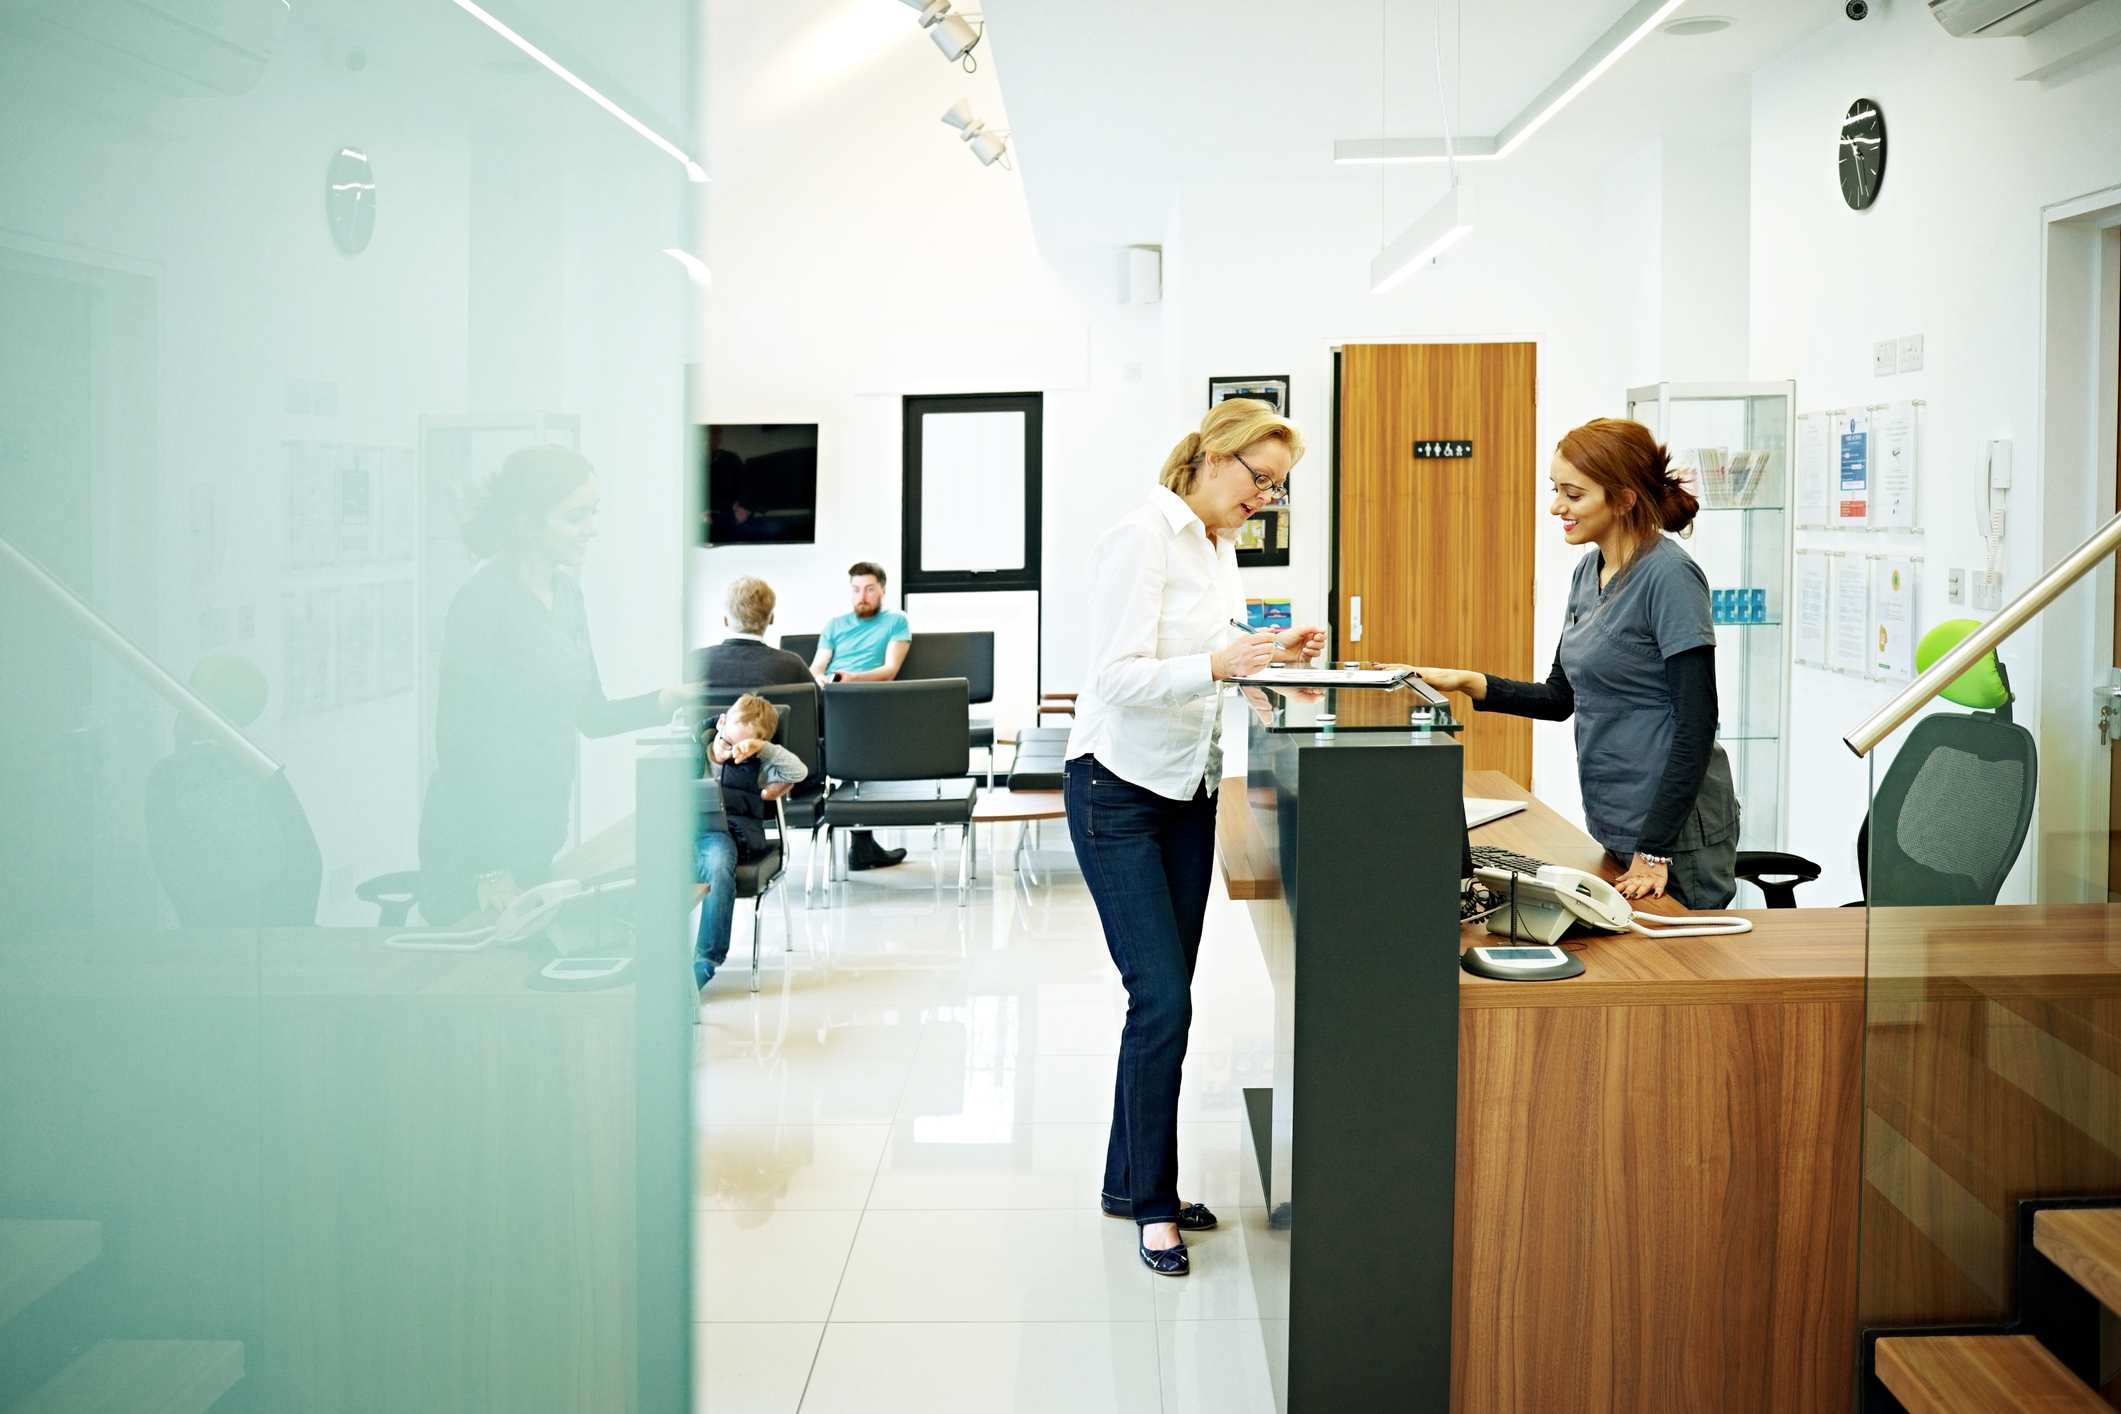 Effects of Ineffective Communication in Medical Offices